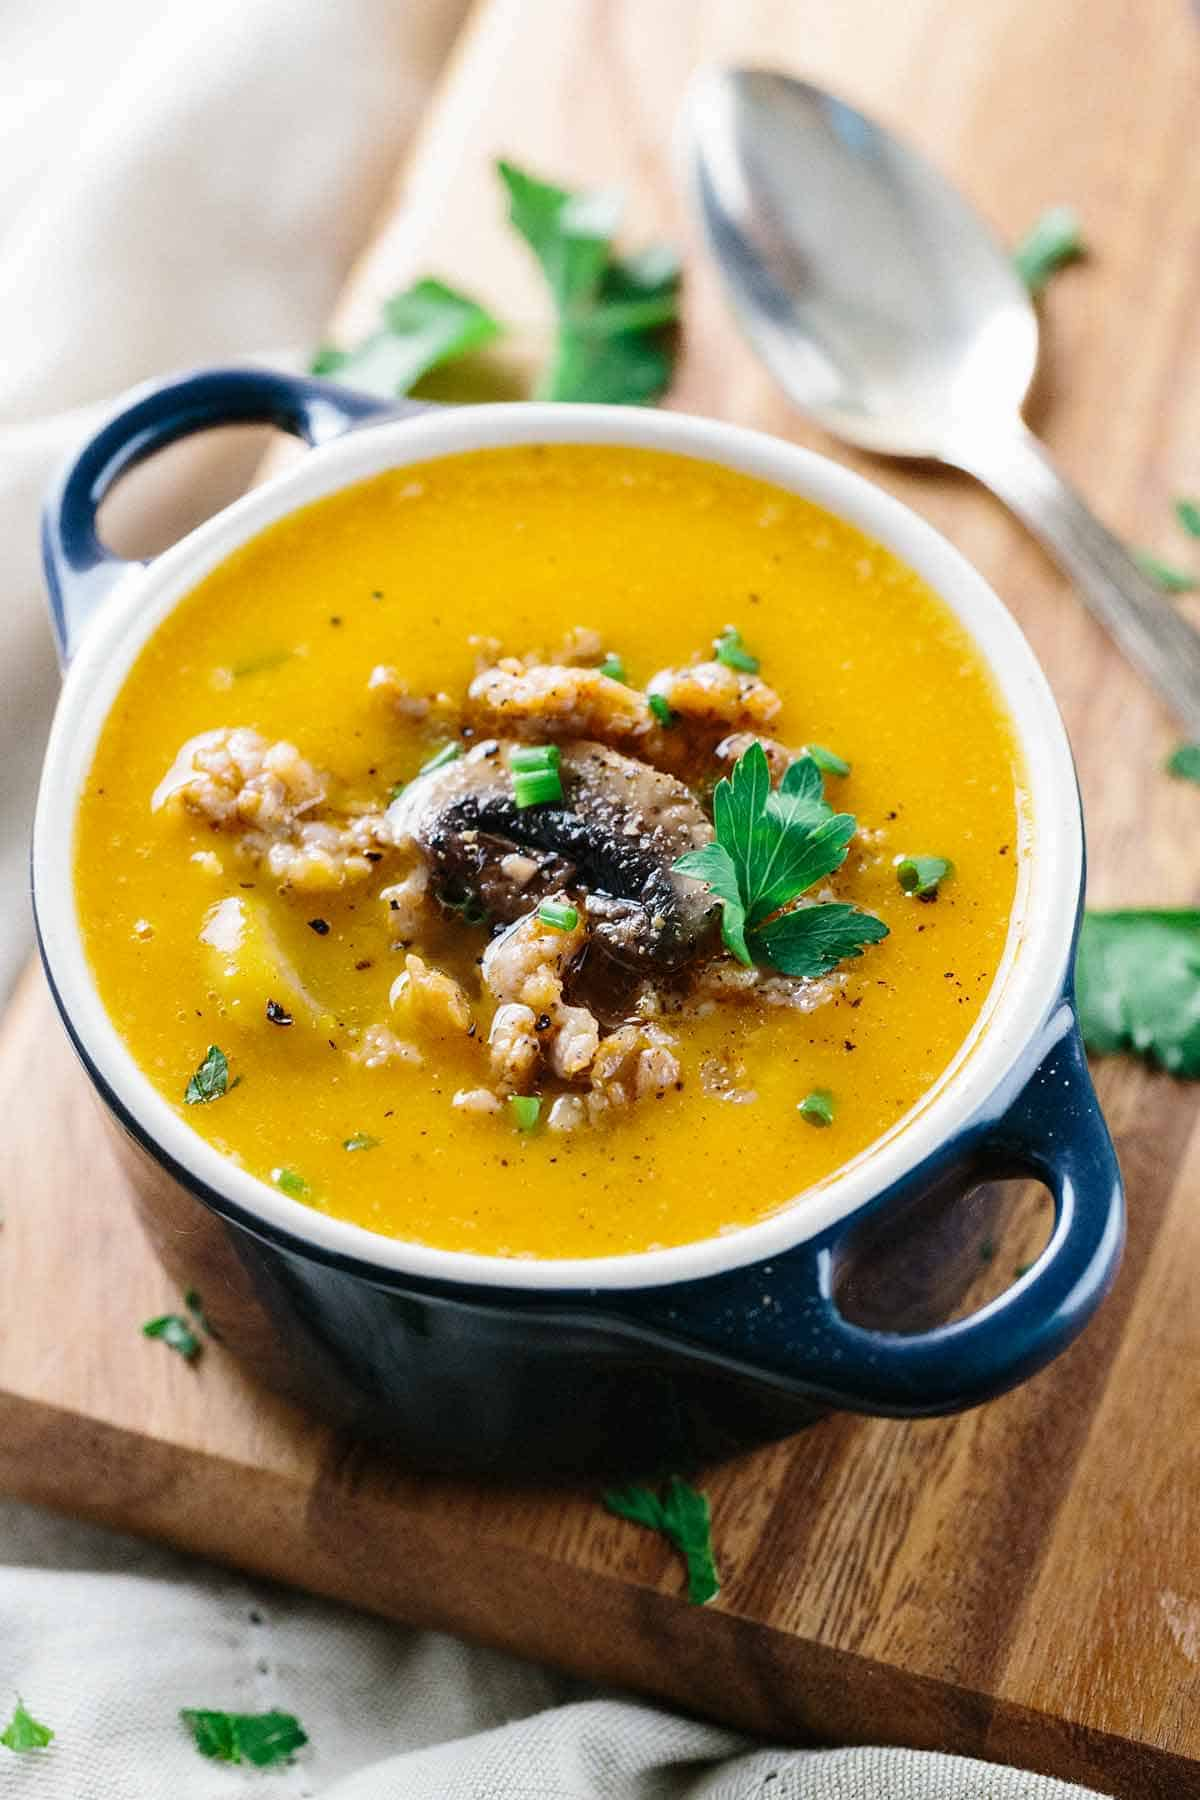 Rustic Italian Butternut Squash Soup - Hearty and flavorful Tuscan inspired recipe with savory sausage and mushrooms. | jessicagavin.com